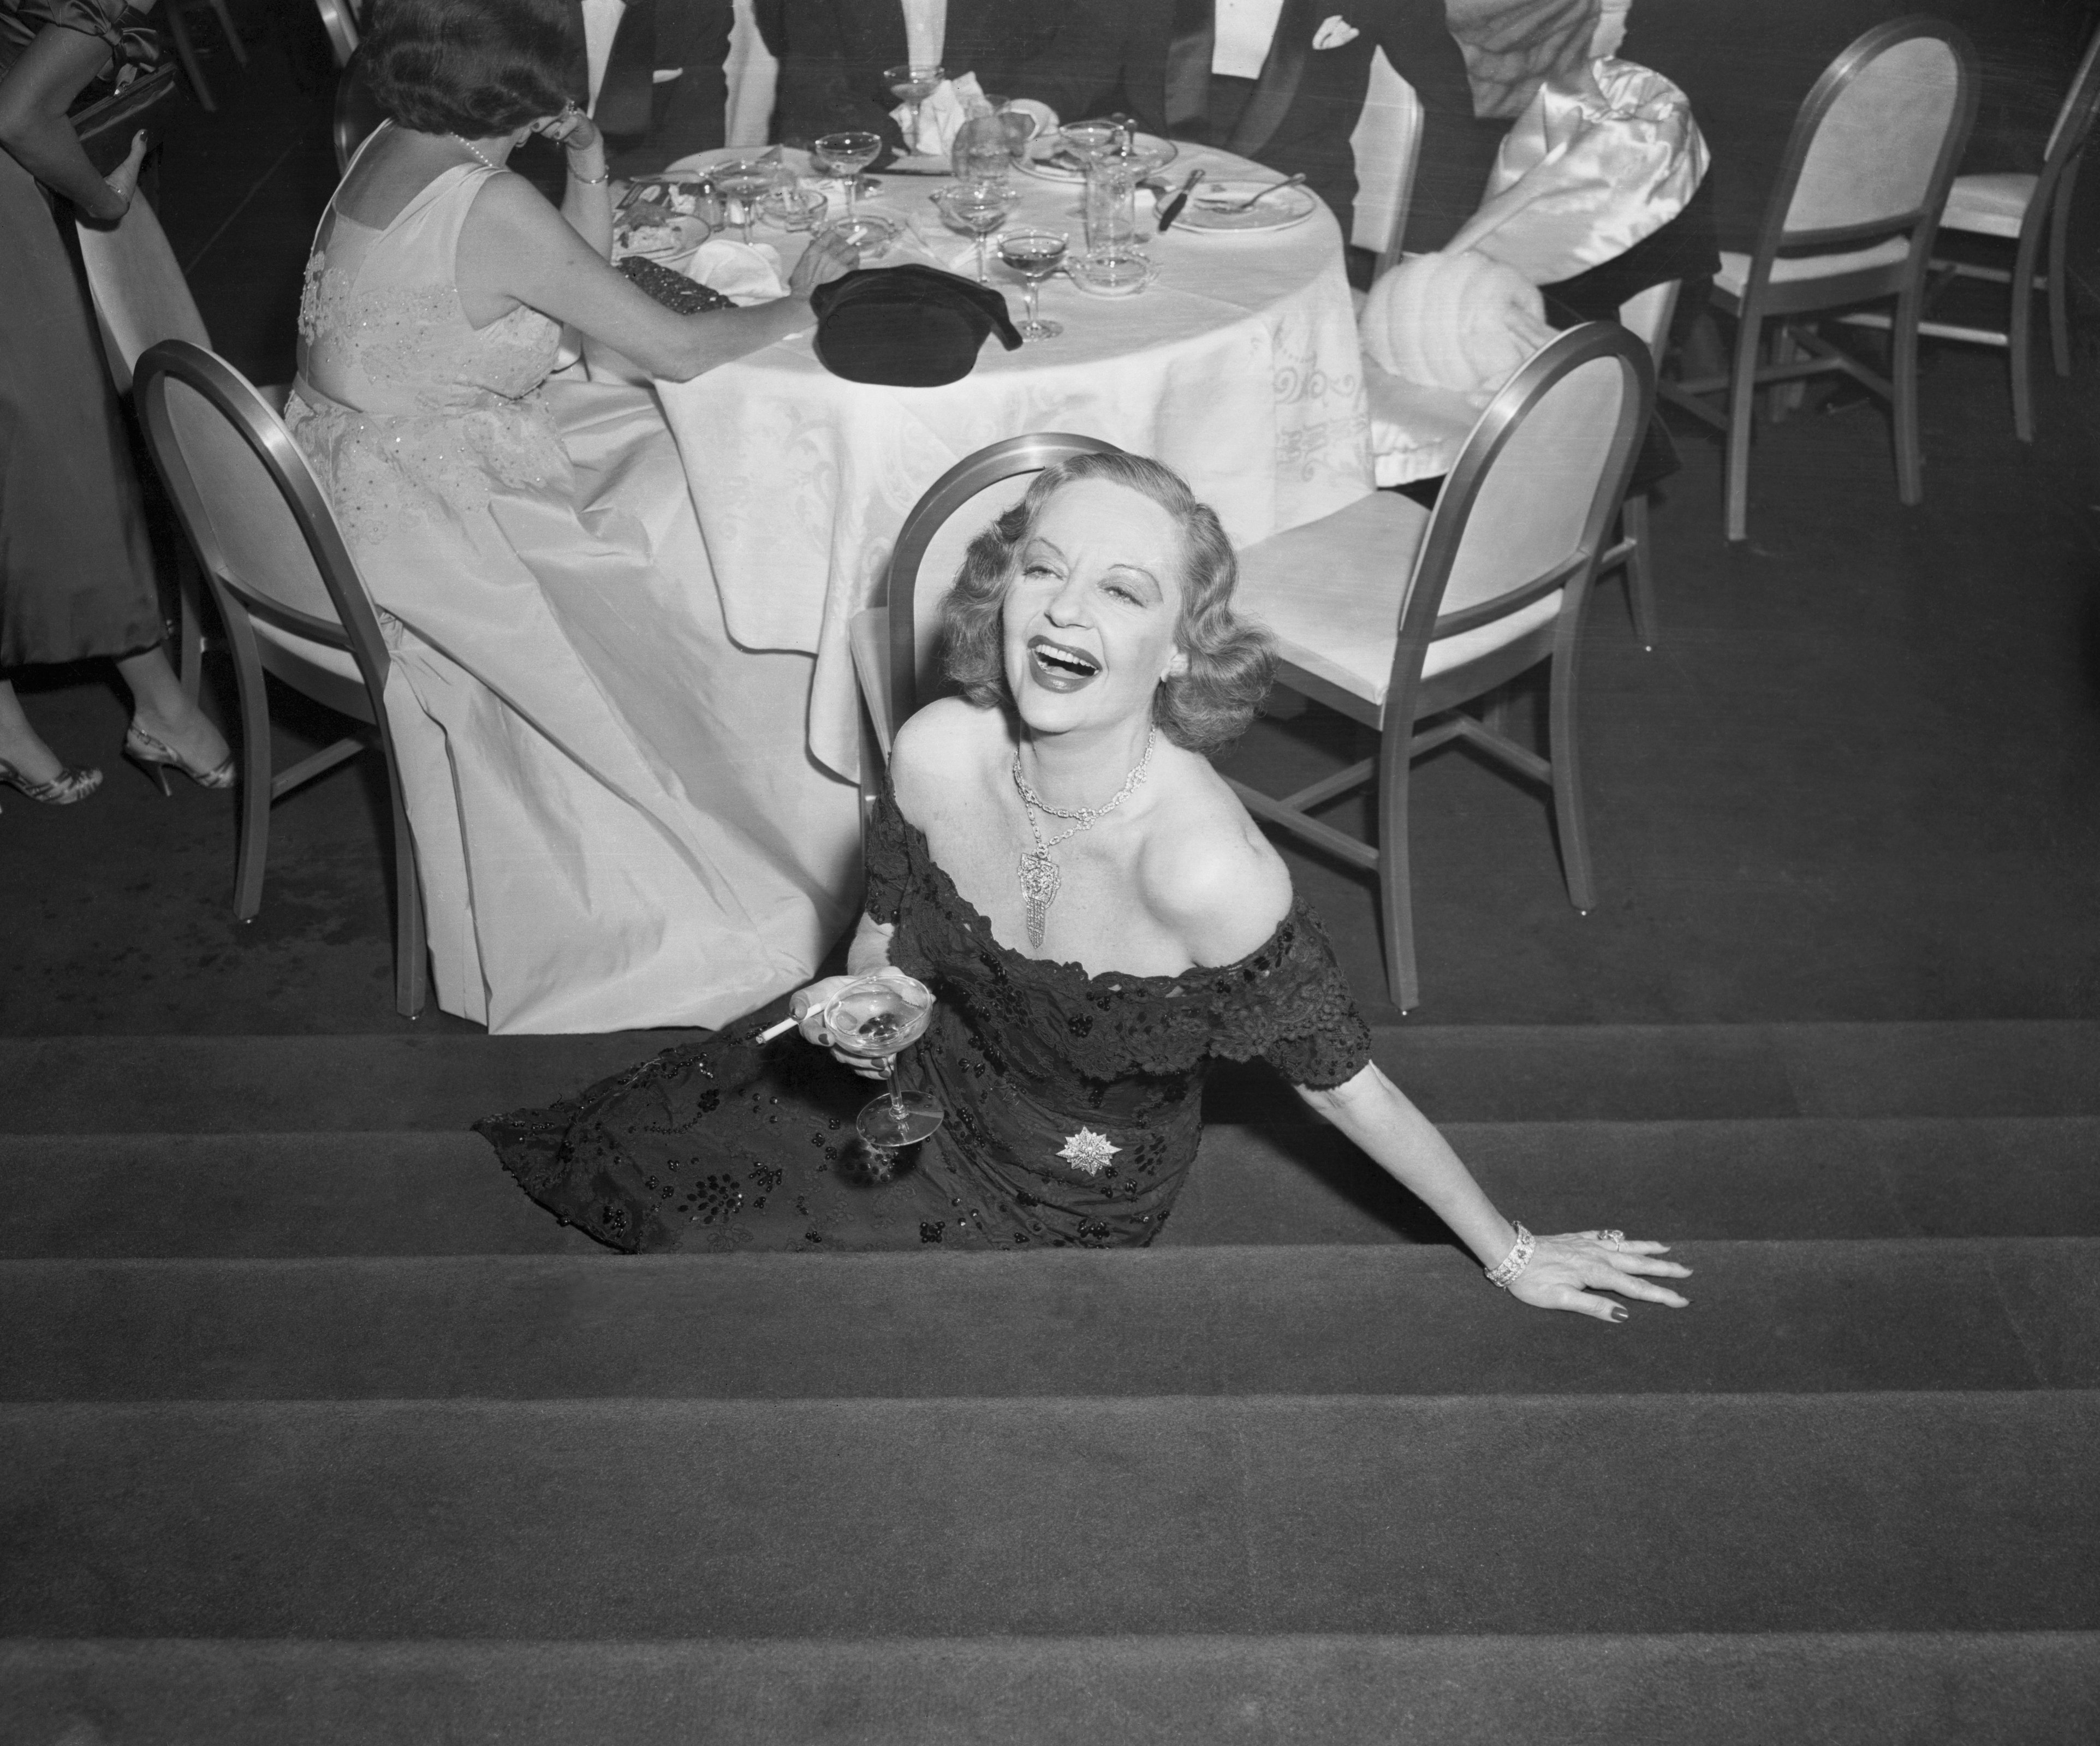 Tallulah Bankhead pictured at Hotel Ambassador in New York circa 1954 | Source: Getty Images